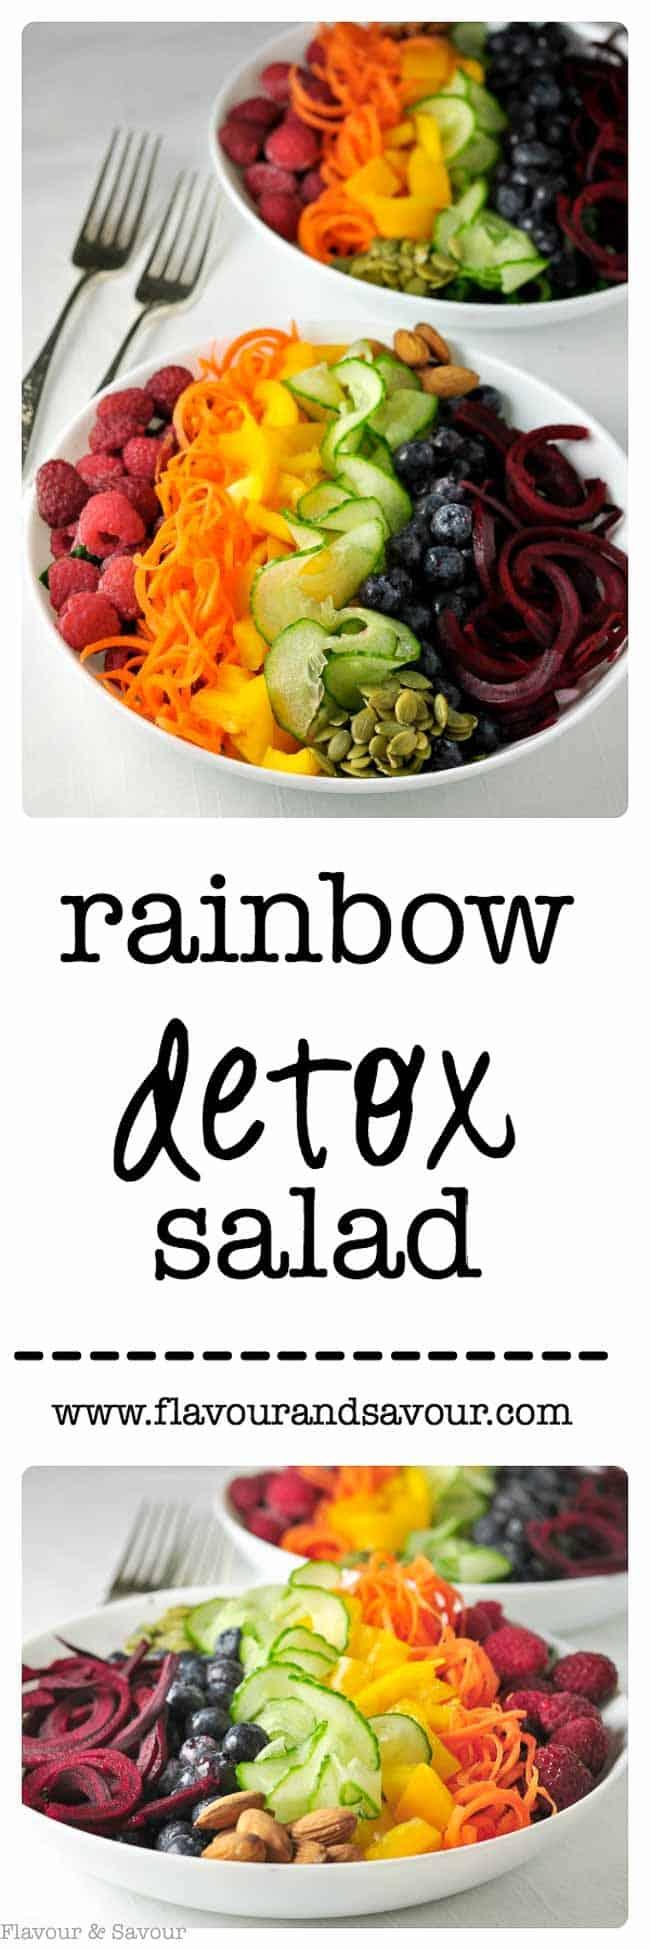 This colourful vegan Rainbow Detox Salad is full of healthy vegetables, berries and seeds that can help to detoxify your body and brighten your skin. Have fun creating a beautiful whole-meal salad! #rainbow #salad #vegan #antioxidants